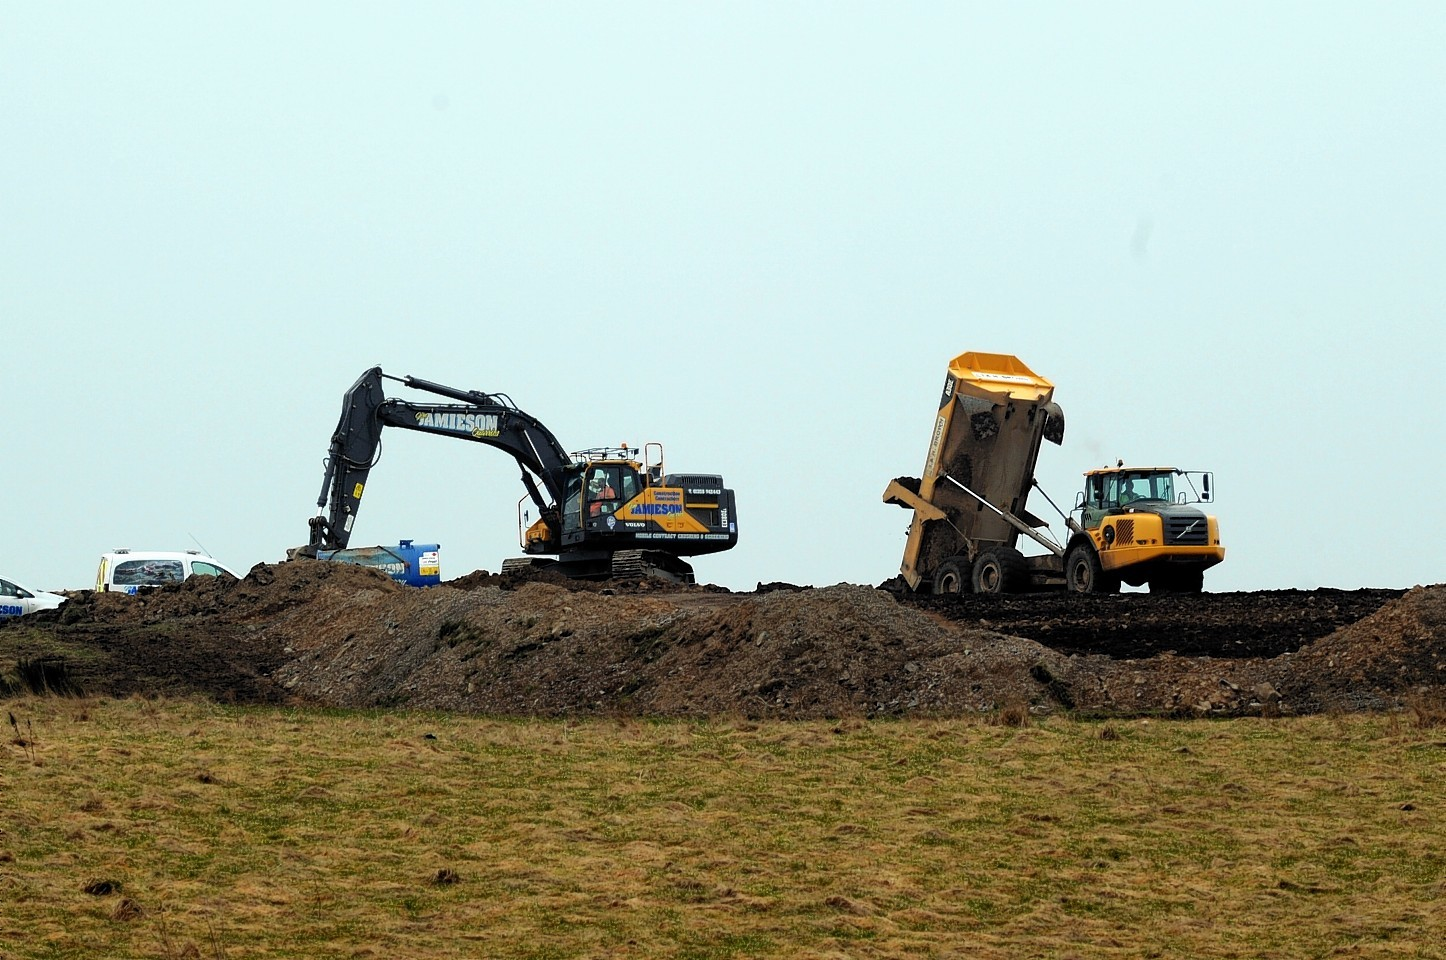 Aberdeenshire Council have launched an investigation into work at runtland, Whitecairns